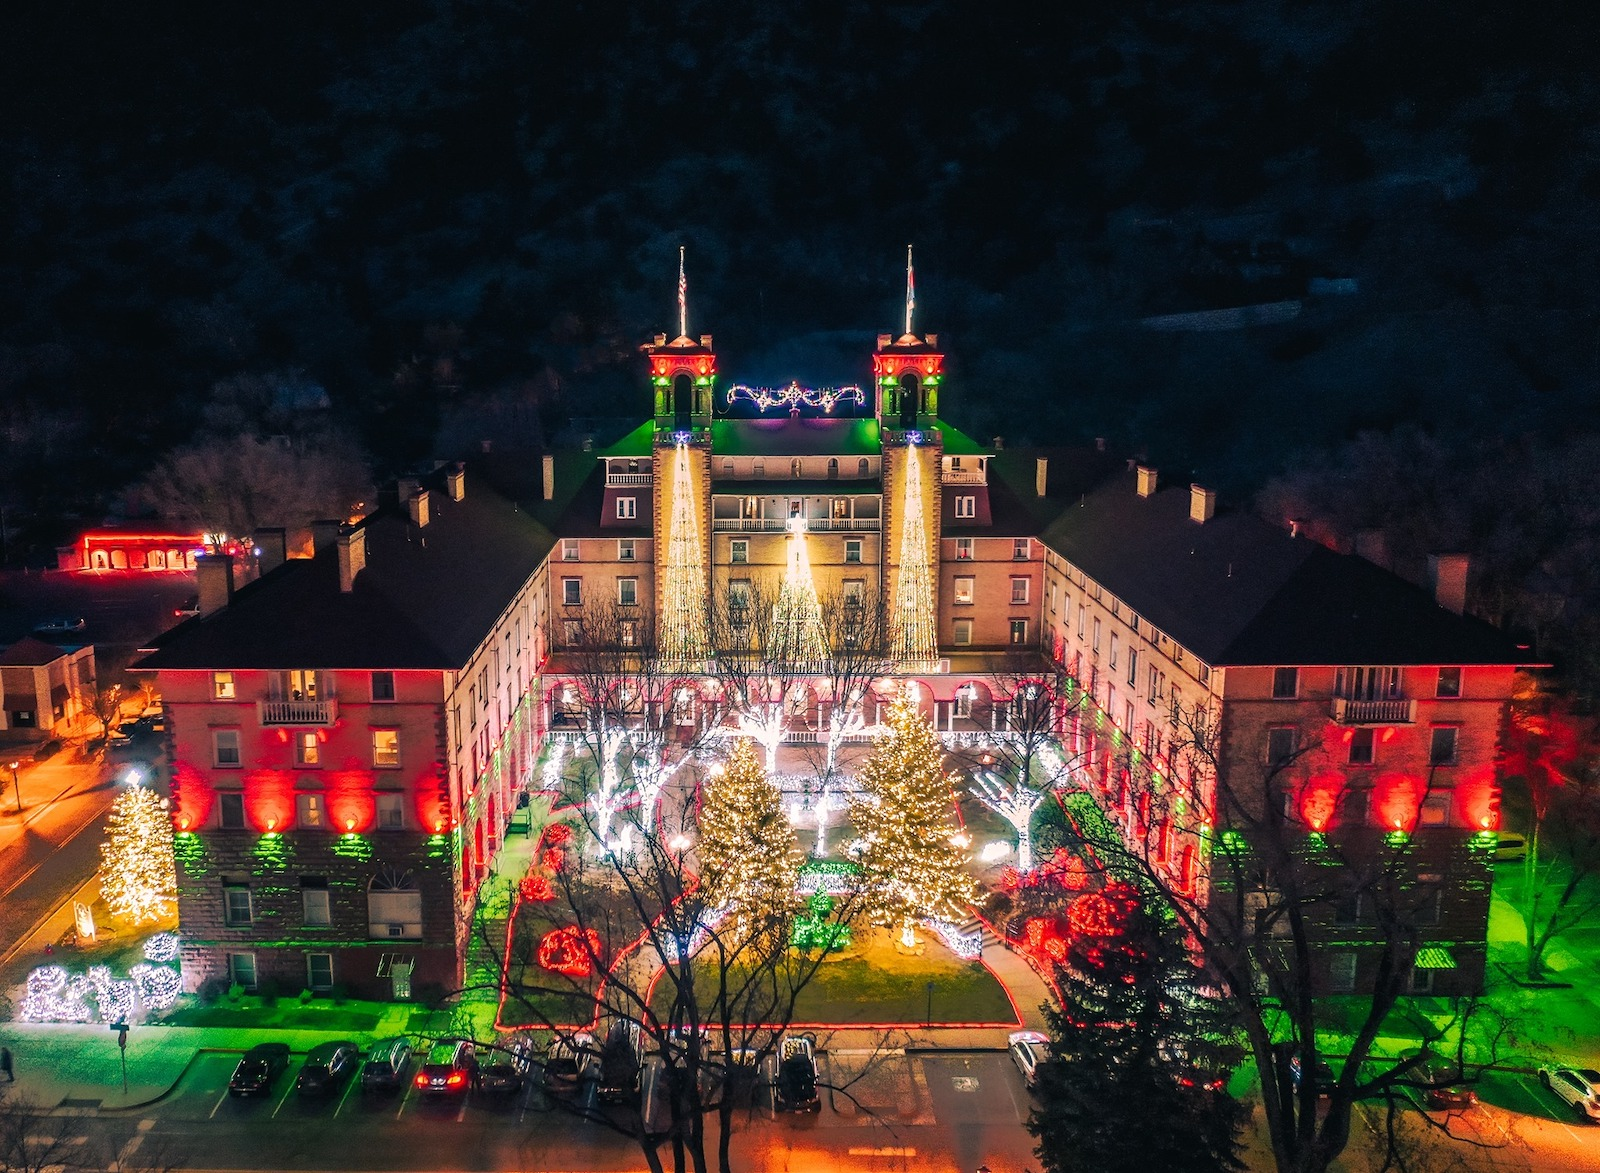 Image of the Hotel Colorado illuminated with holiday lights